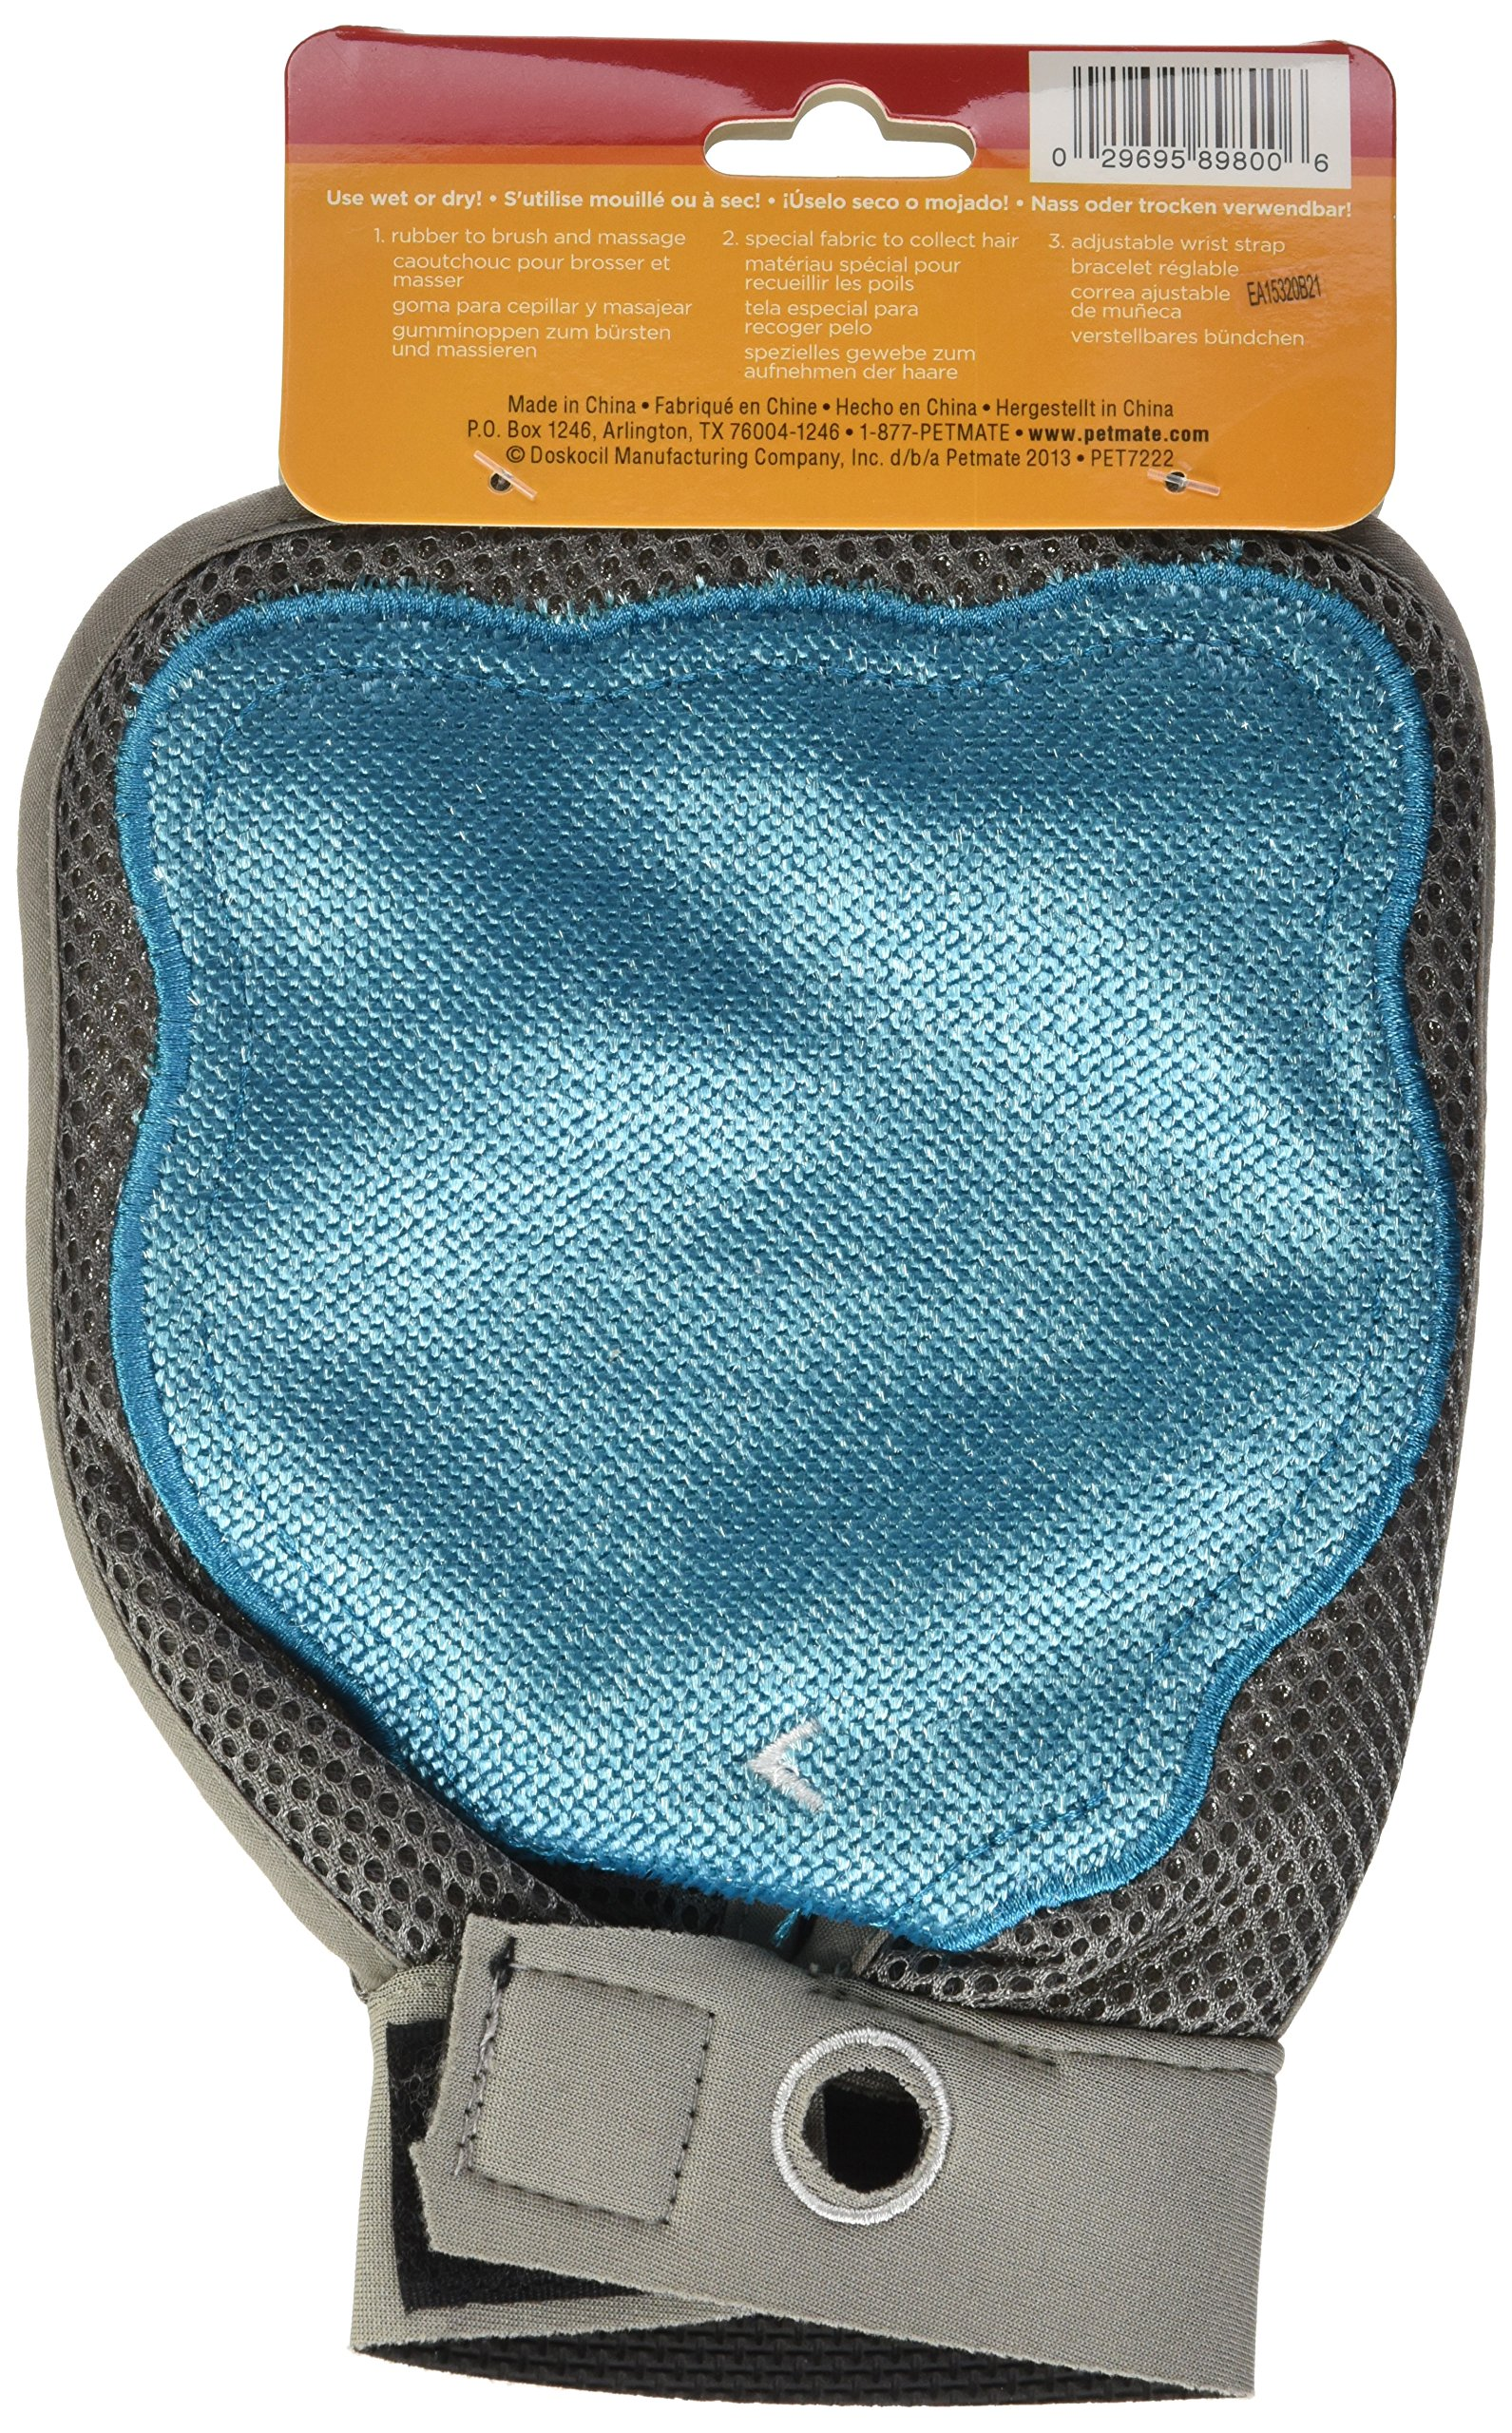 Petmate 89800 Furbuster 3-in-1 Cat Grooming Glove, Teal